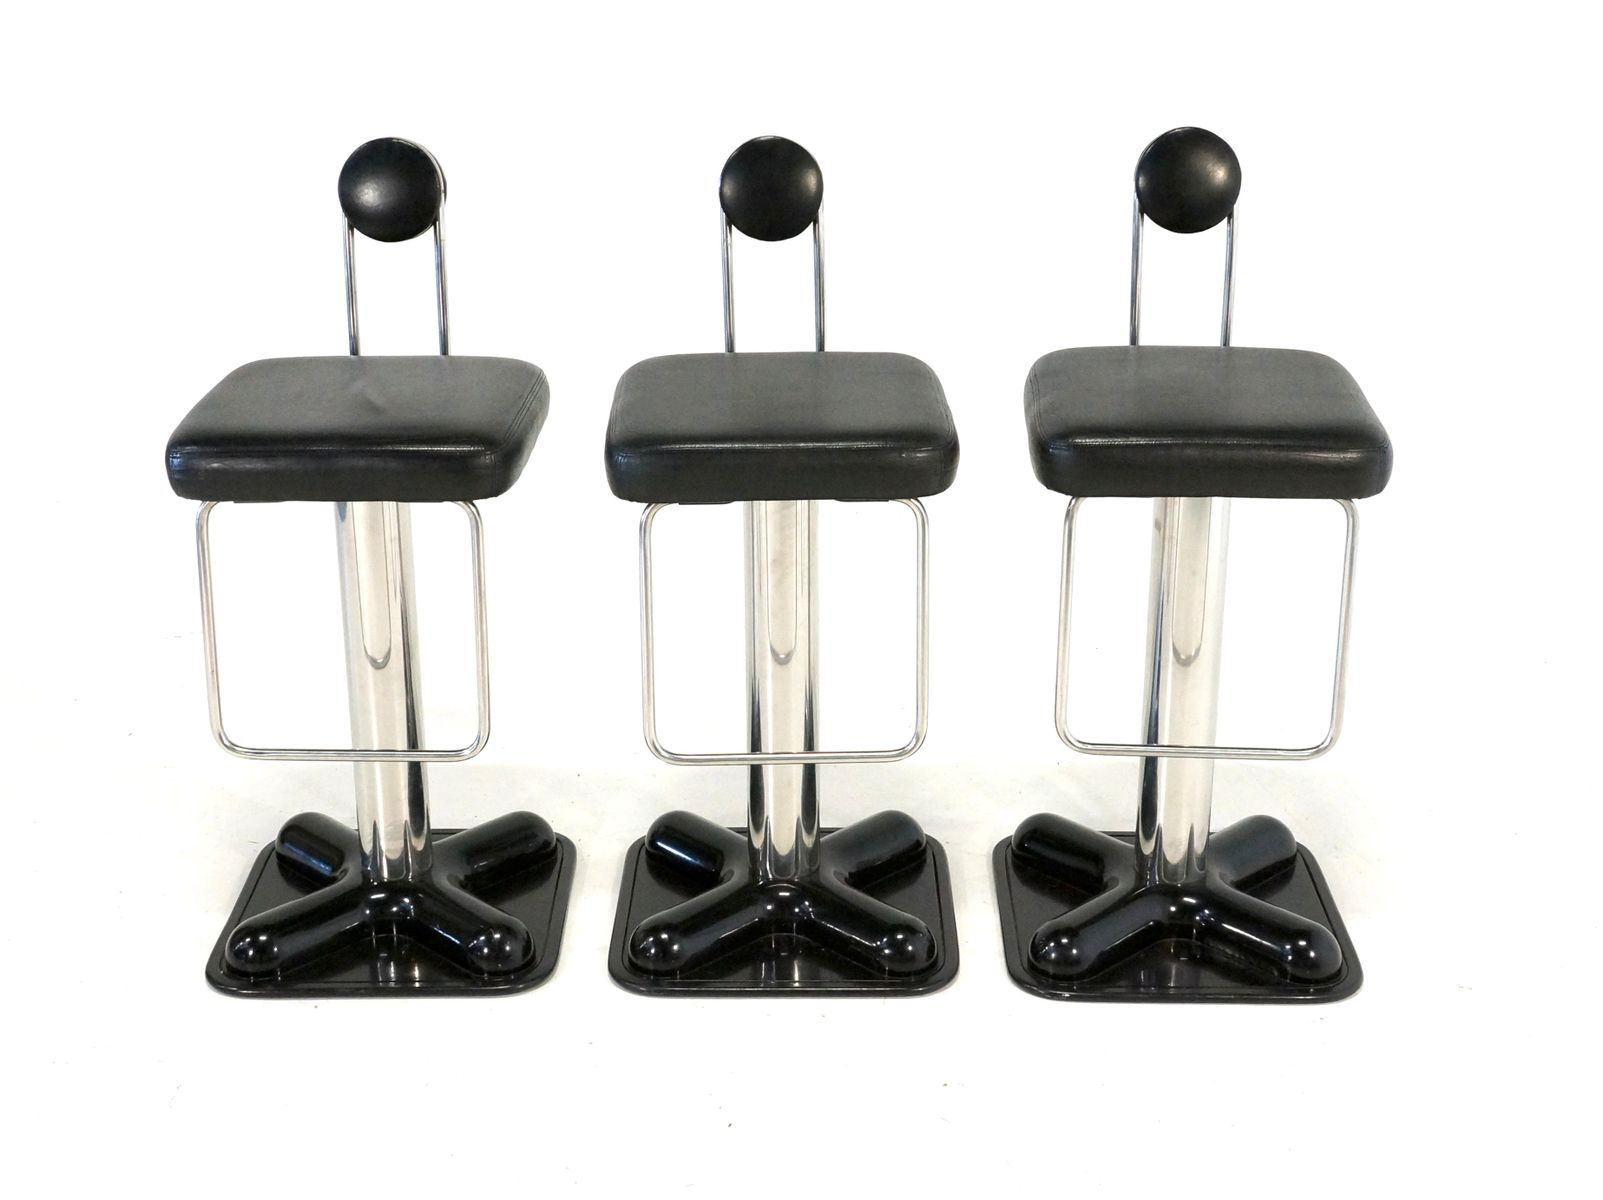 brillo bar stools by joe colombo for zanotta 1970 set of 3 for sale at pamono. Black Bedroom Furniture Sets. Home Design Ideas